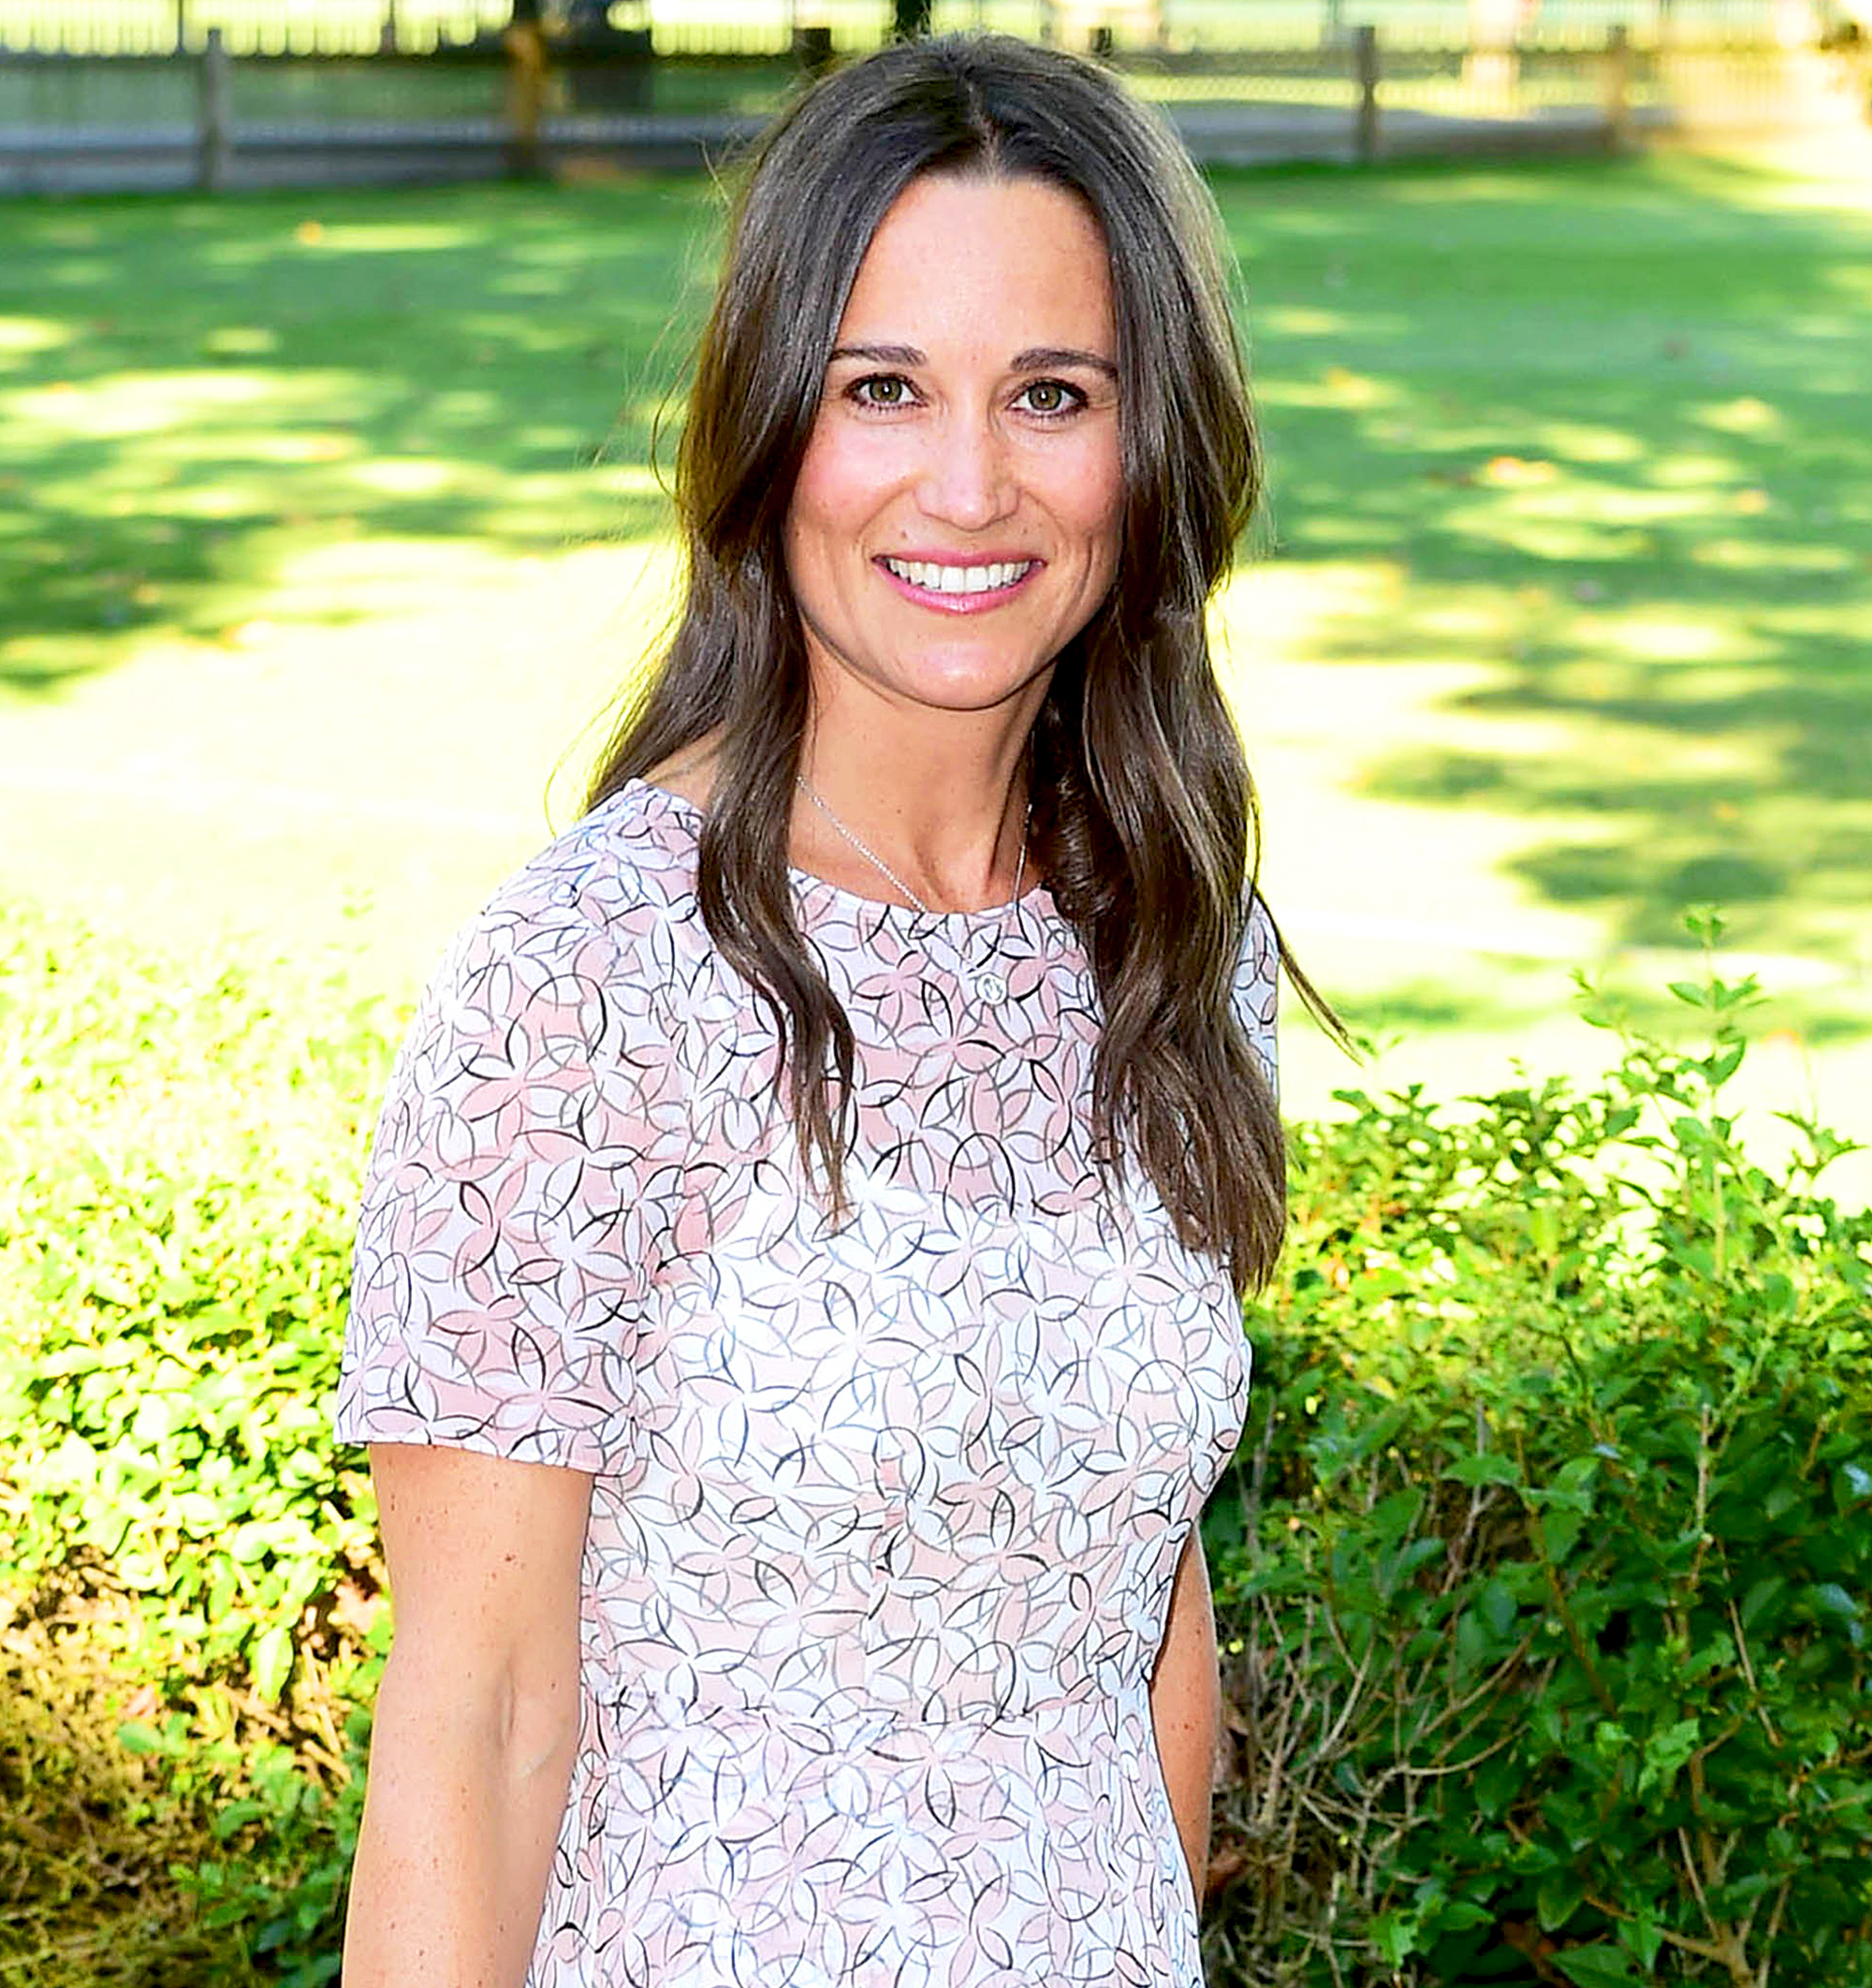 Pippa Middleton confirms she's pregnant